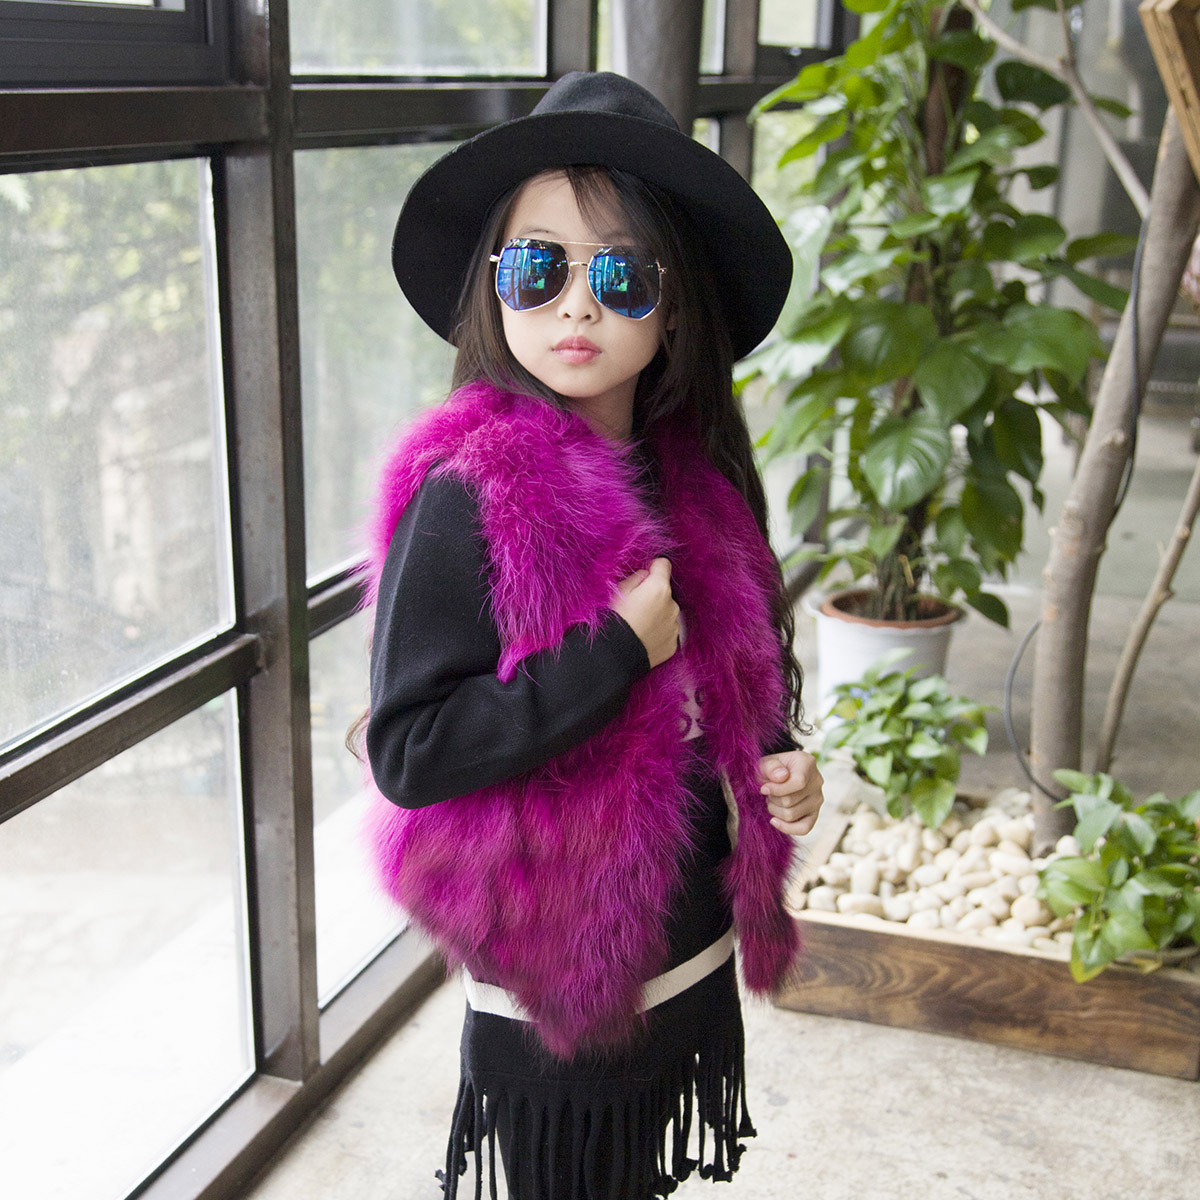 Europe and The United States Childrens Fur Coat Spring Girls Raccoon Fur Fashion Casual Short Vest JacketEurope and The United States Childrens Fur Coat Spring Girls Raccoon Fur Fashion Casual Short Vest Jacket